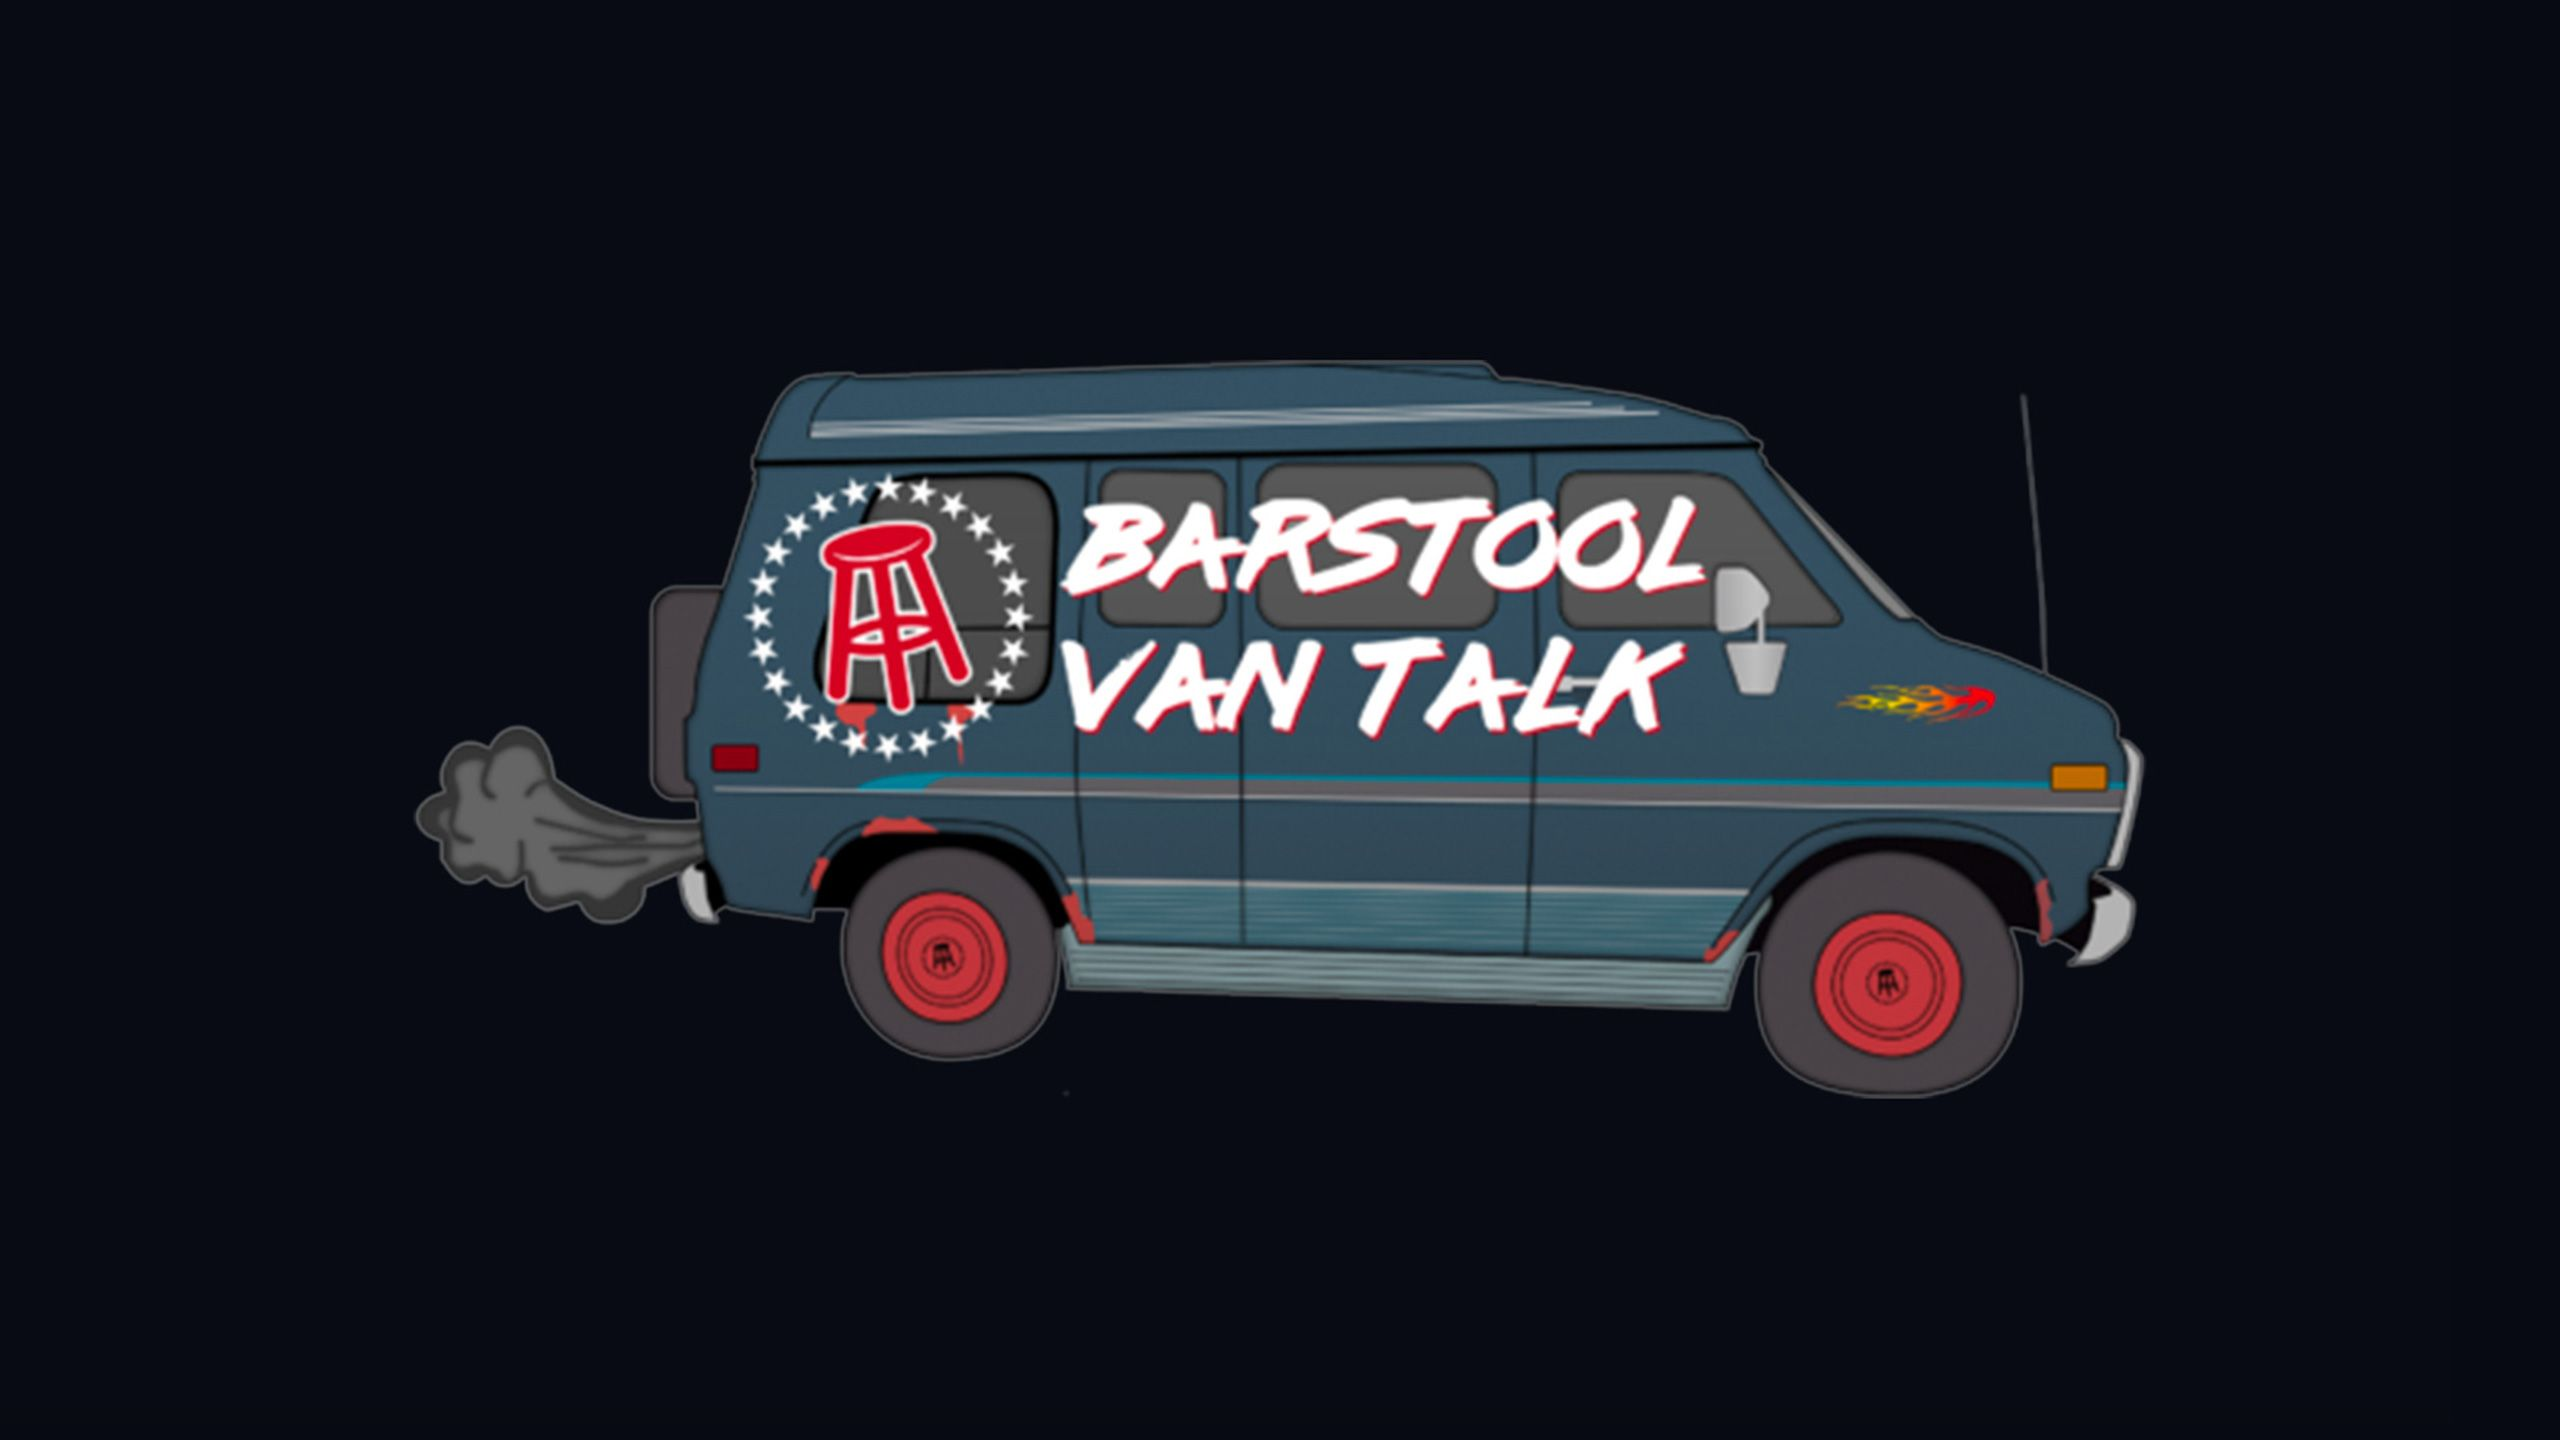 Wed, 10/18 - Barstool Van Talk